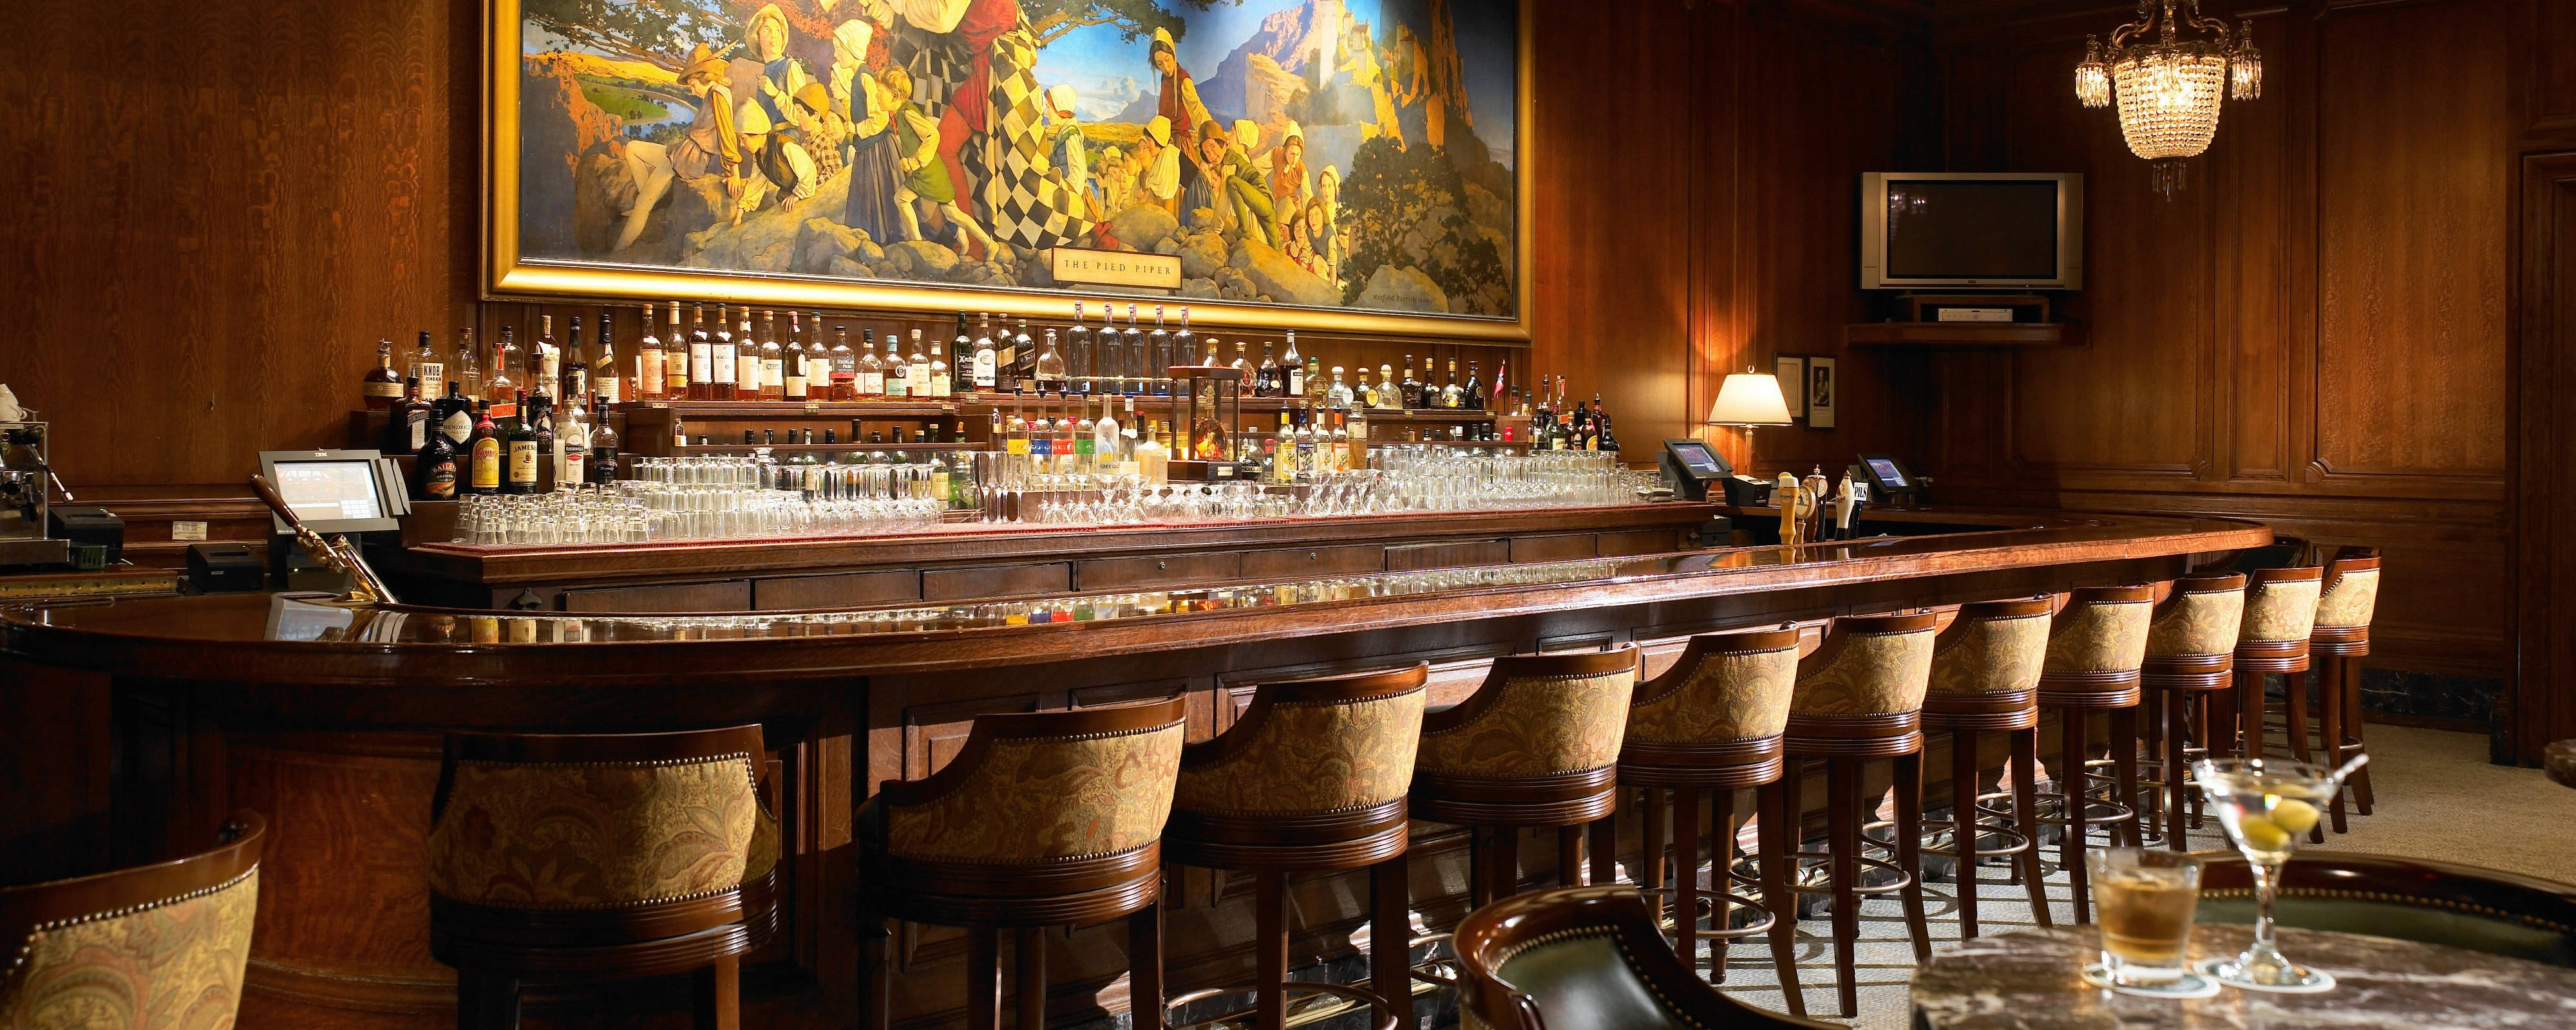 San Francisco hotel restaurants and lounges | Palace Hotel, a Luxury ...